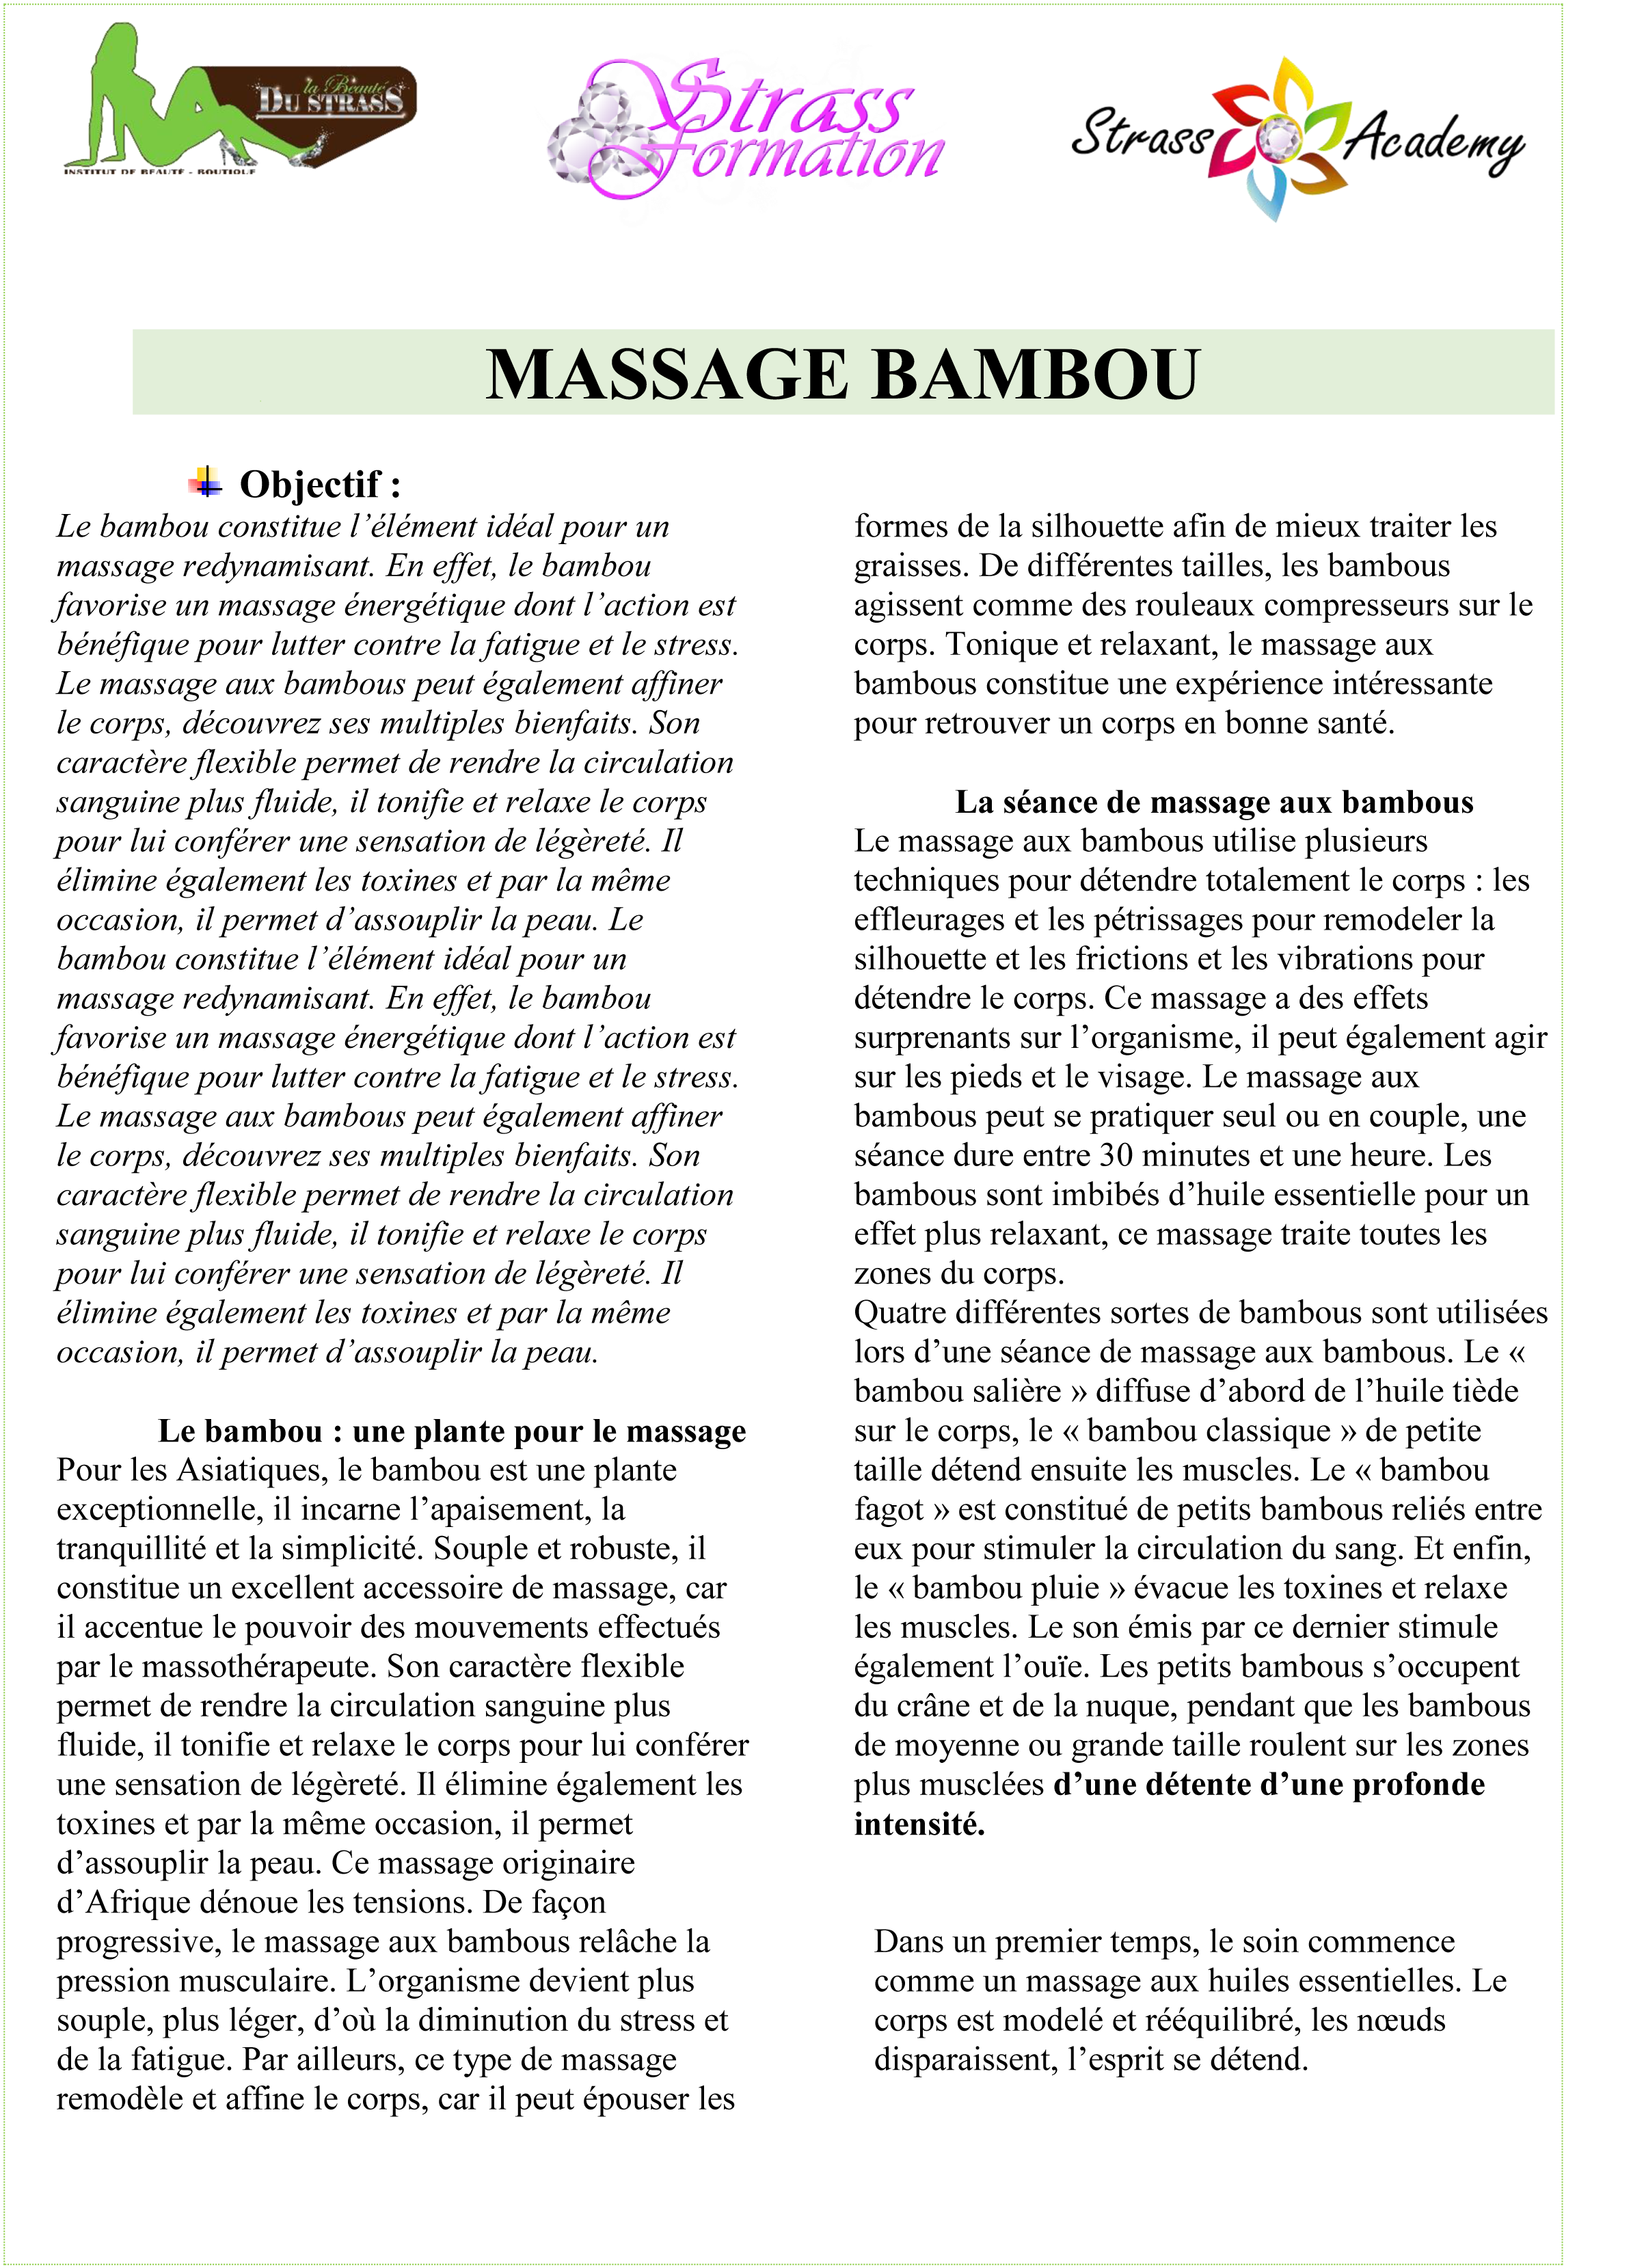 MASSAGE BAMBOU-1